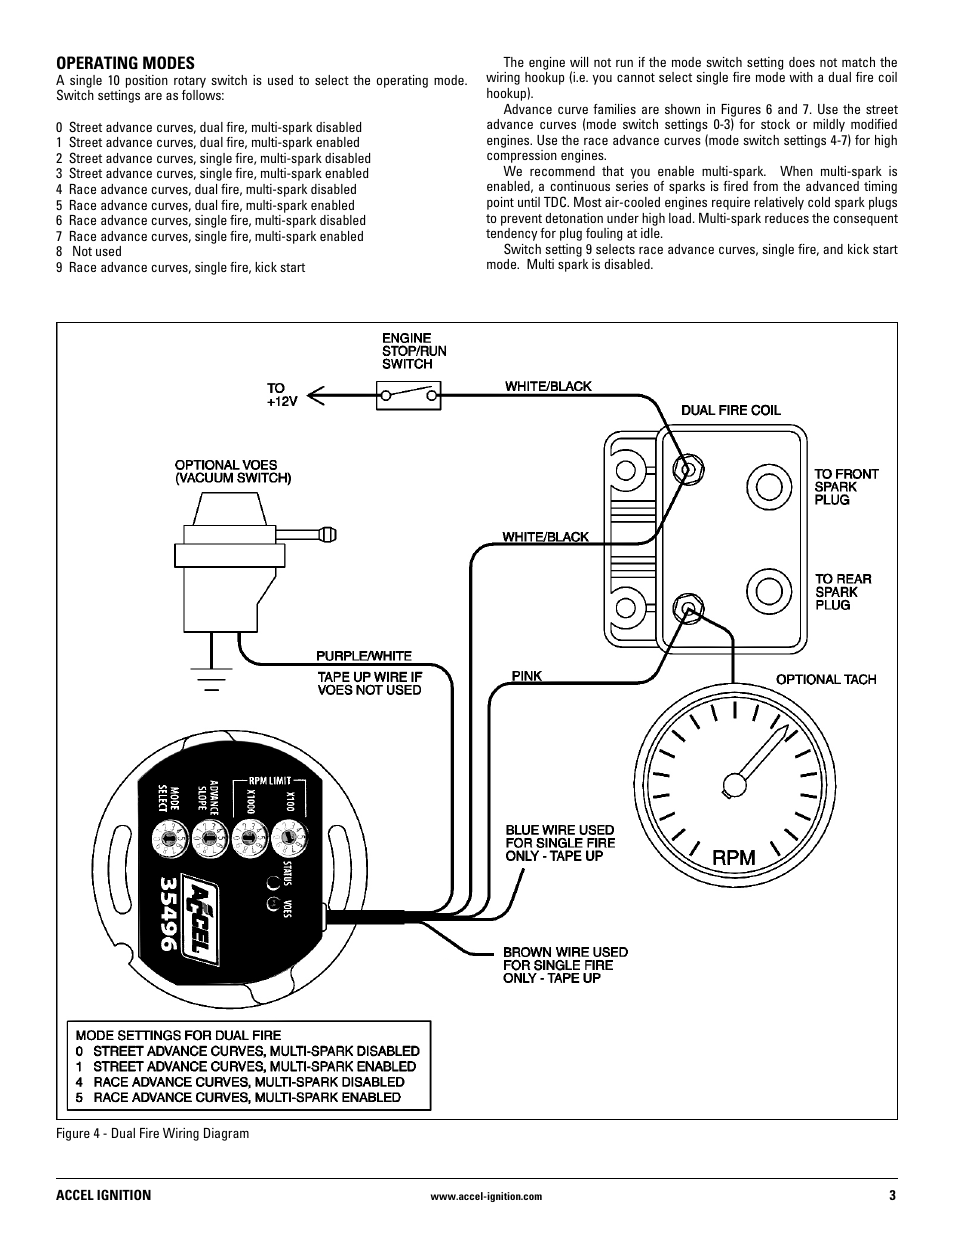 mallory ignition accel ignition 35496 page3?resize\=665%2C861 accell ignition wiring diagram accel 300 wiring diagrams  at soozxer.org